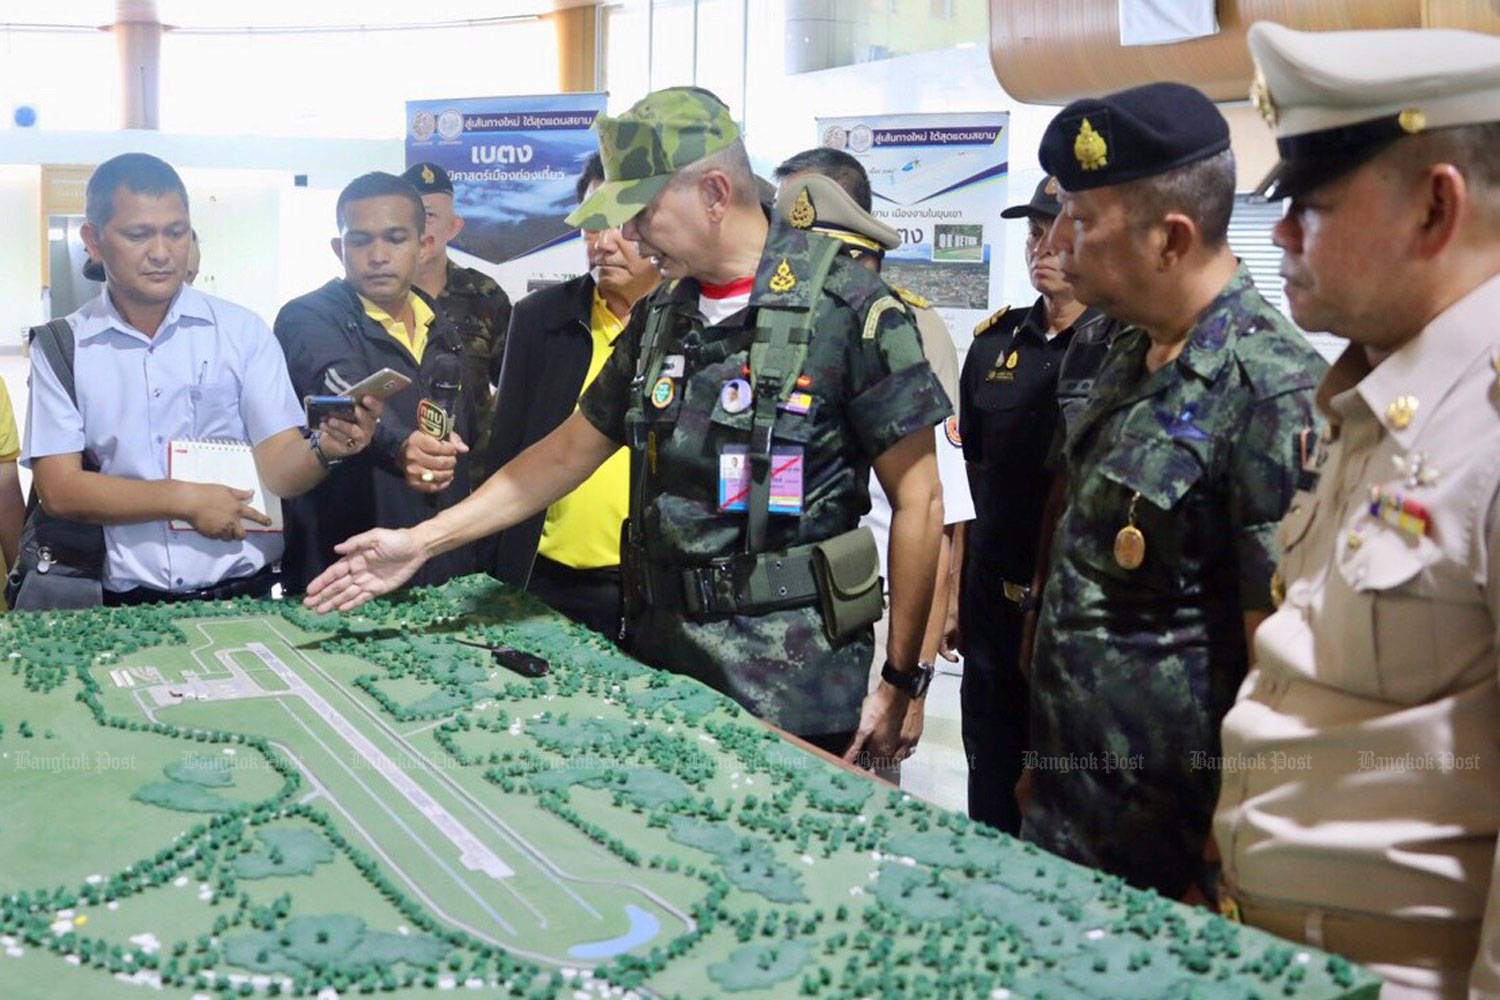 Army commander Gen Apirat Kongsompong (centre) looks at a model for Betong airport during his visit to the new facility in Yala province on Saturday. (Photo by Wassana Nanuam)